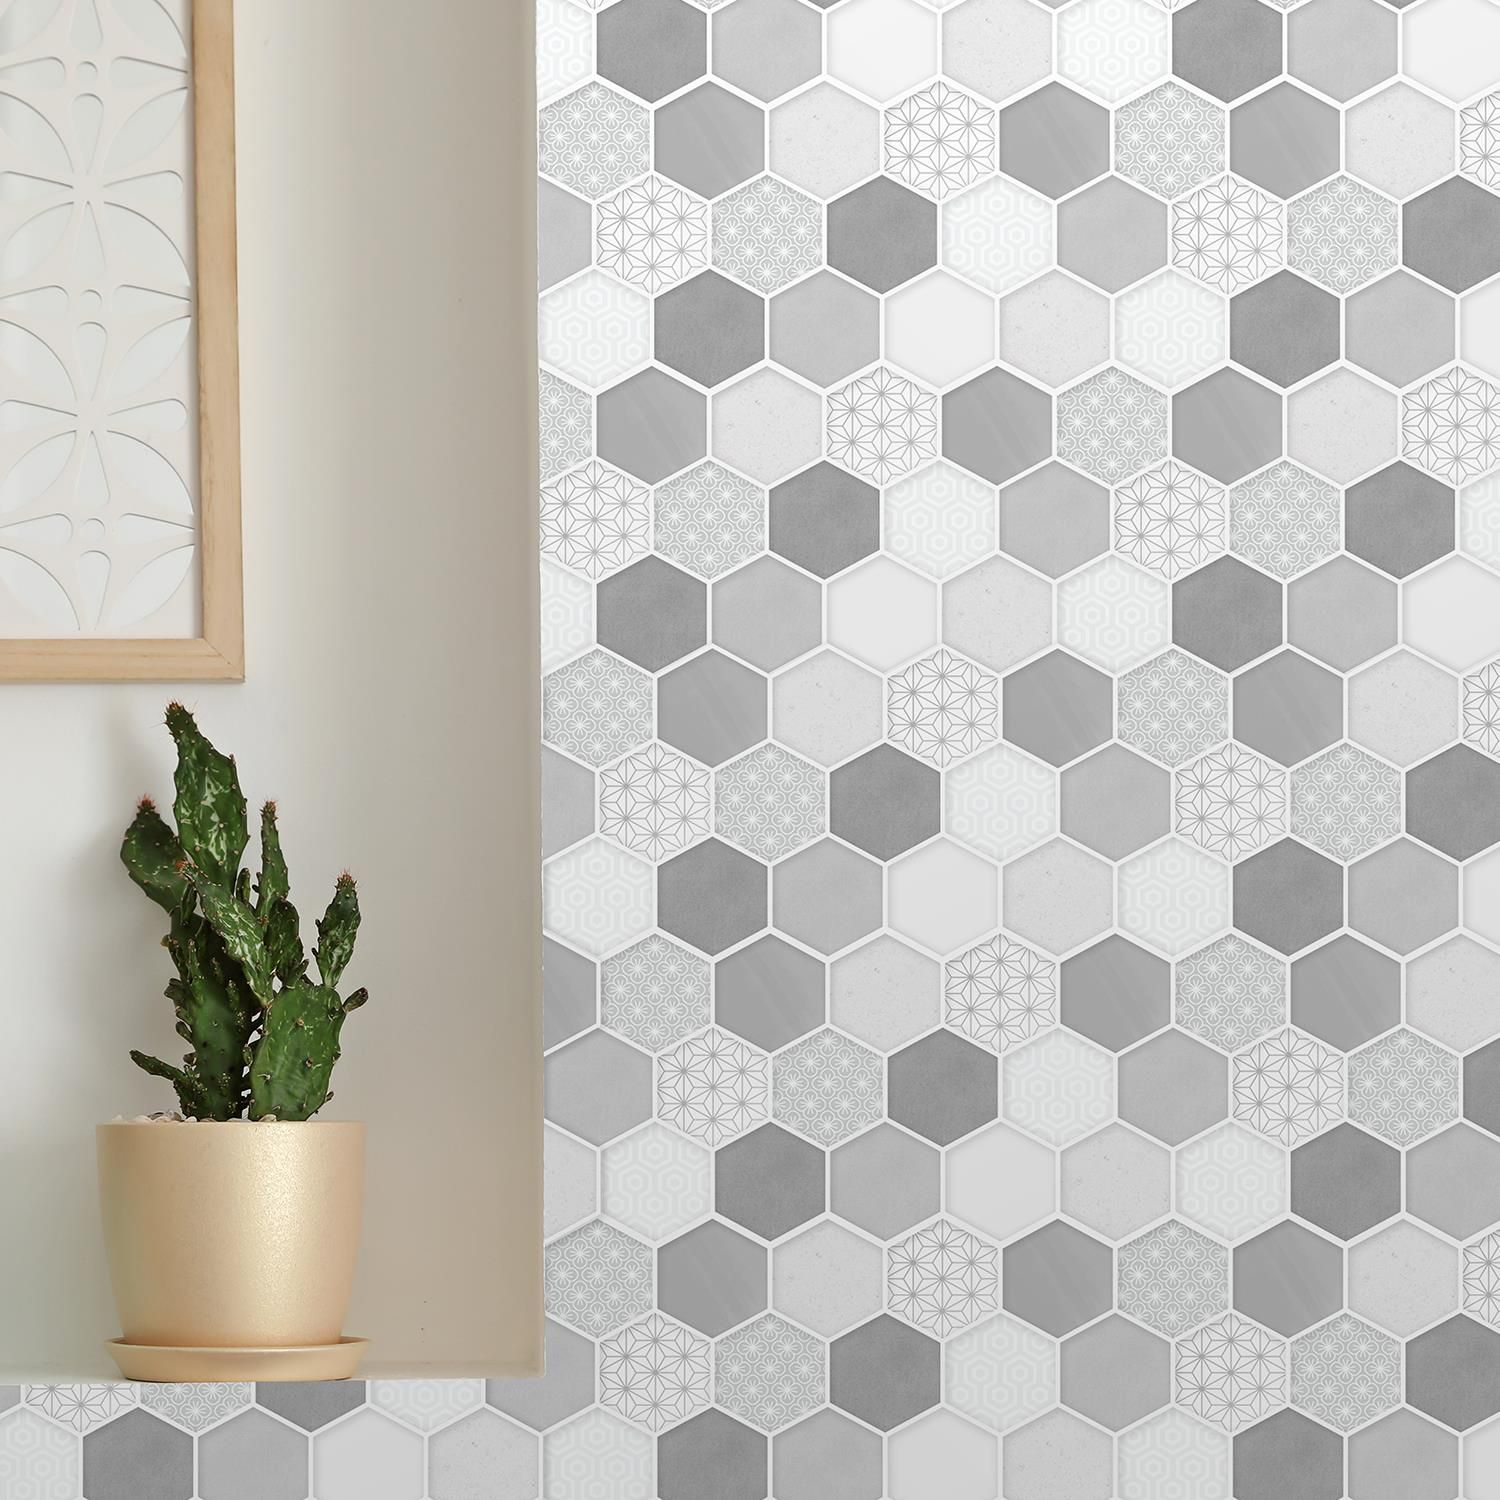 Honey Hexa Grey Glossy 3D DIY Self Adhesive Tile Stickers 30 x 15cm (11.8in x 6 in) - 12pcs in a pack, 3D Tiles Wall Stickers, Kitchen, Bathroom, Living room, peel and stick